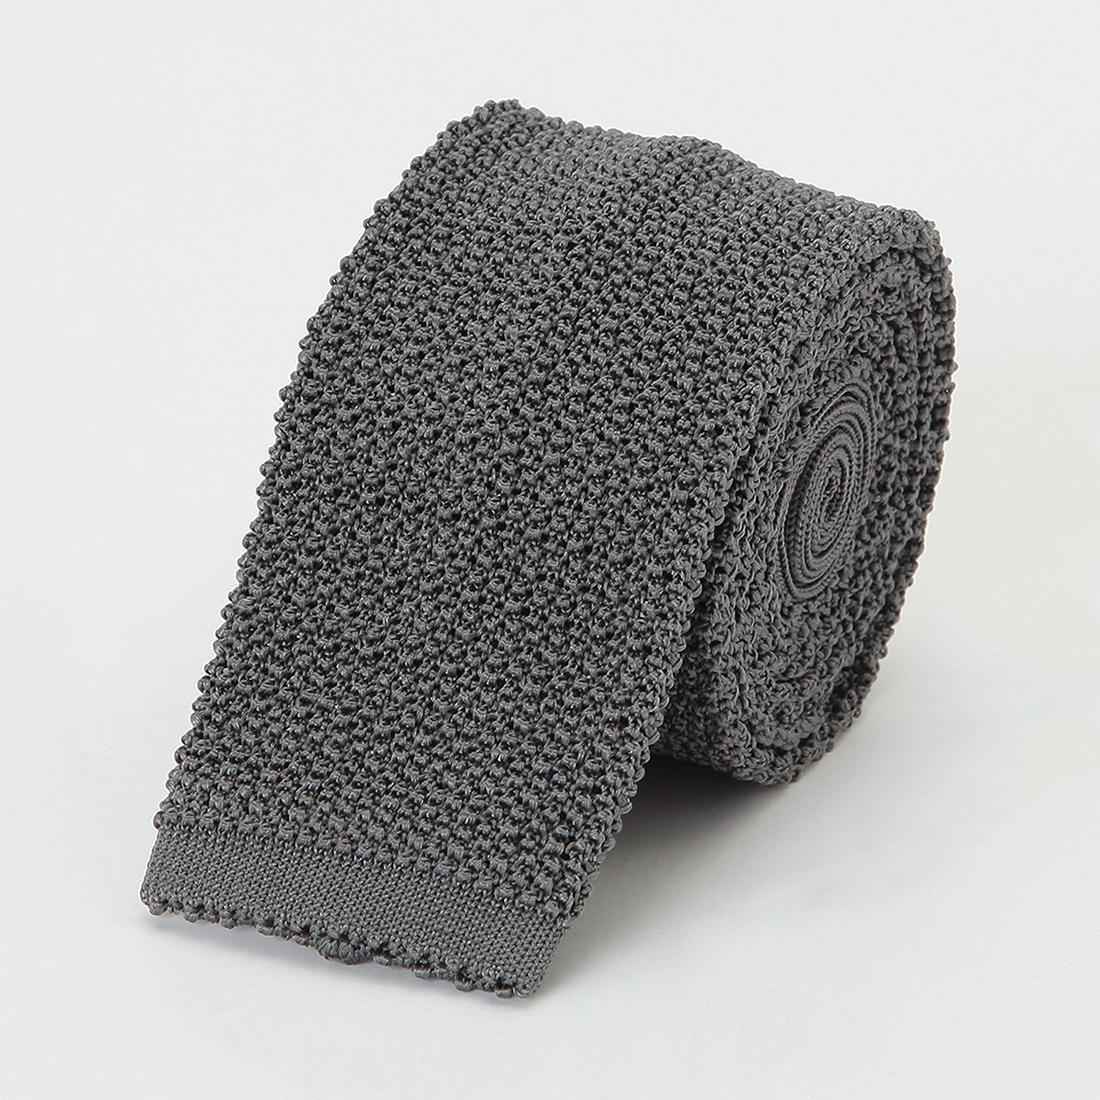 Barneys New York Silk Knit Tie 2011116: Grey